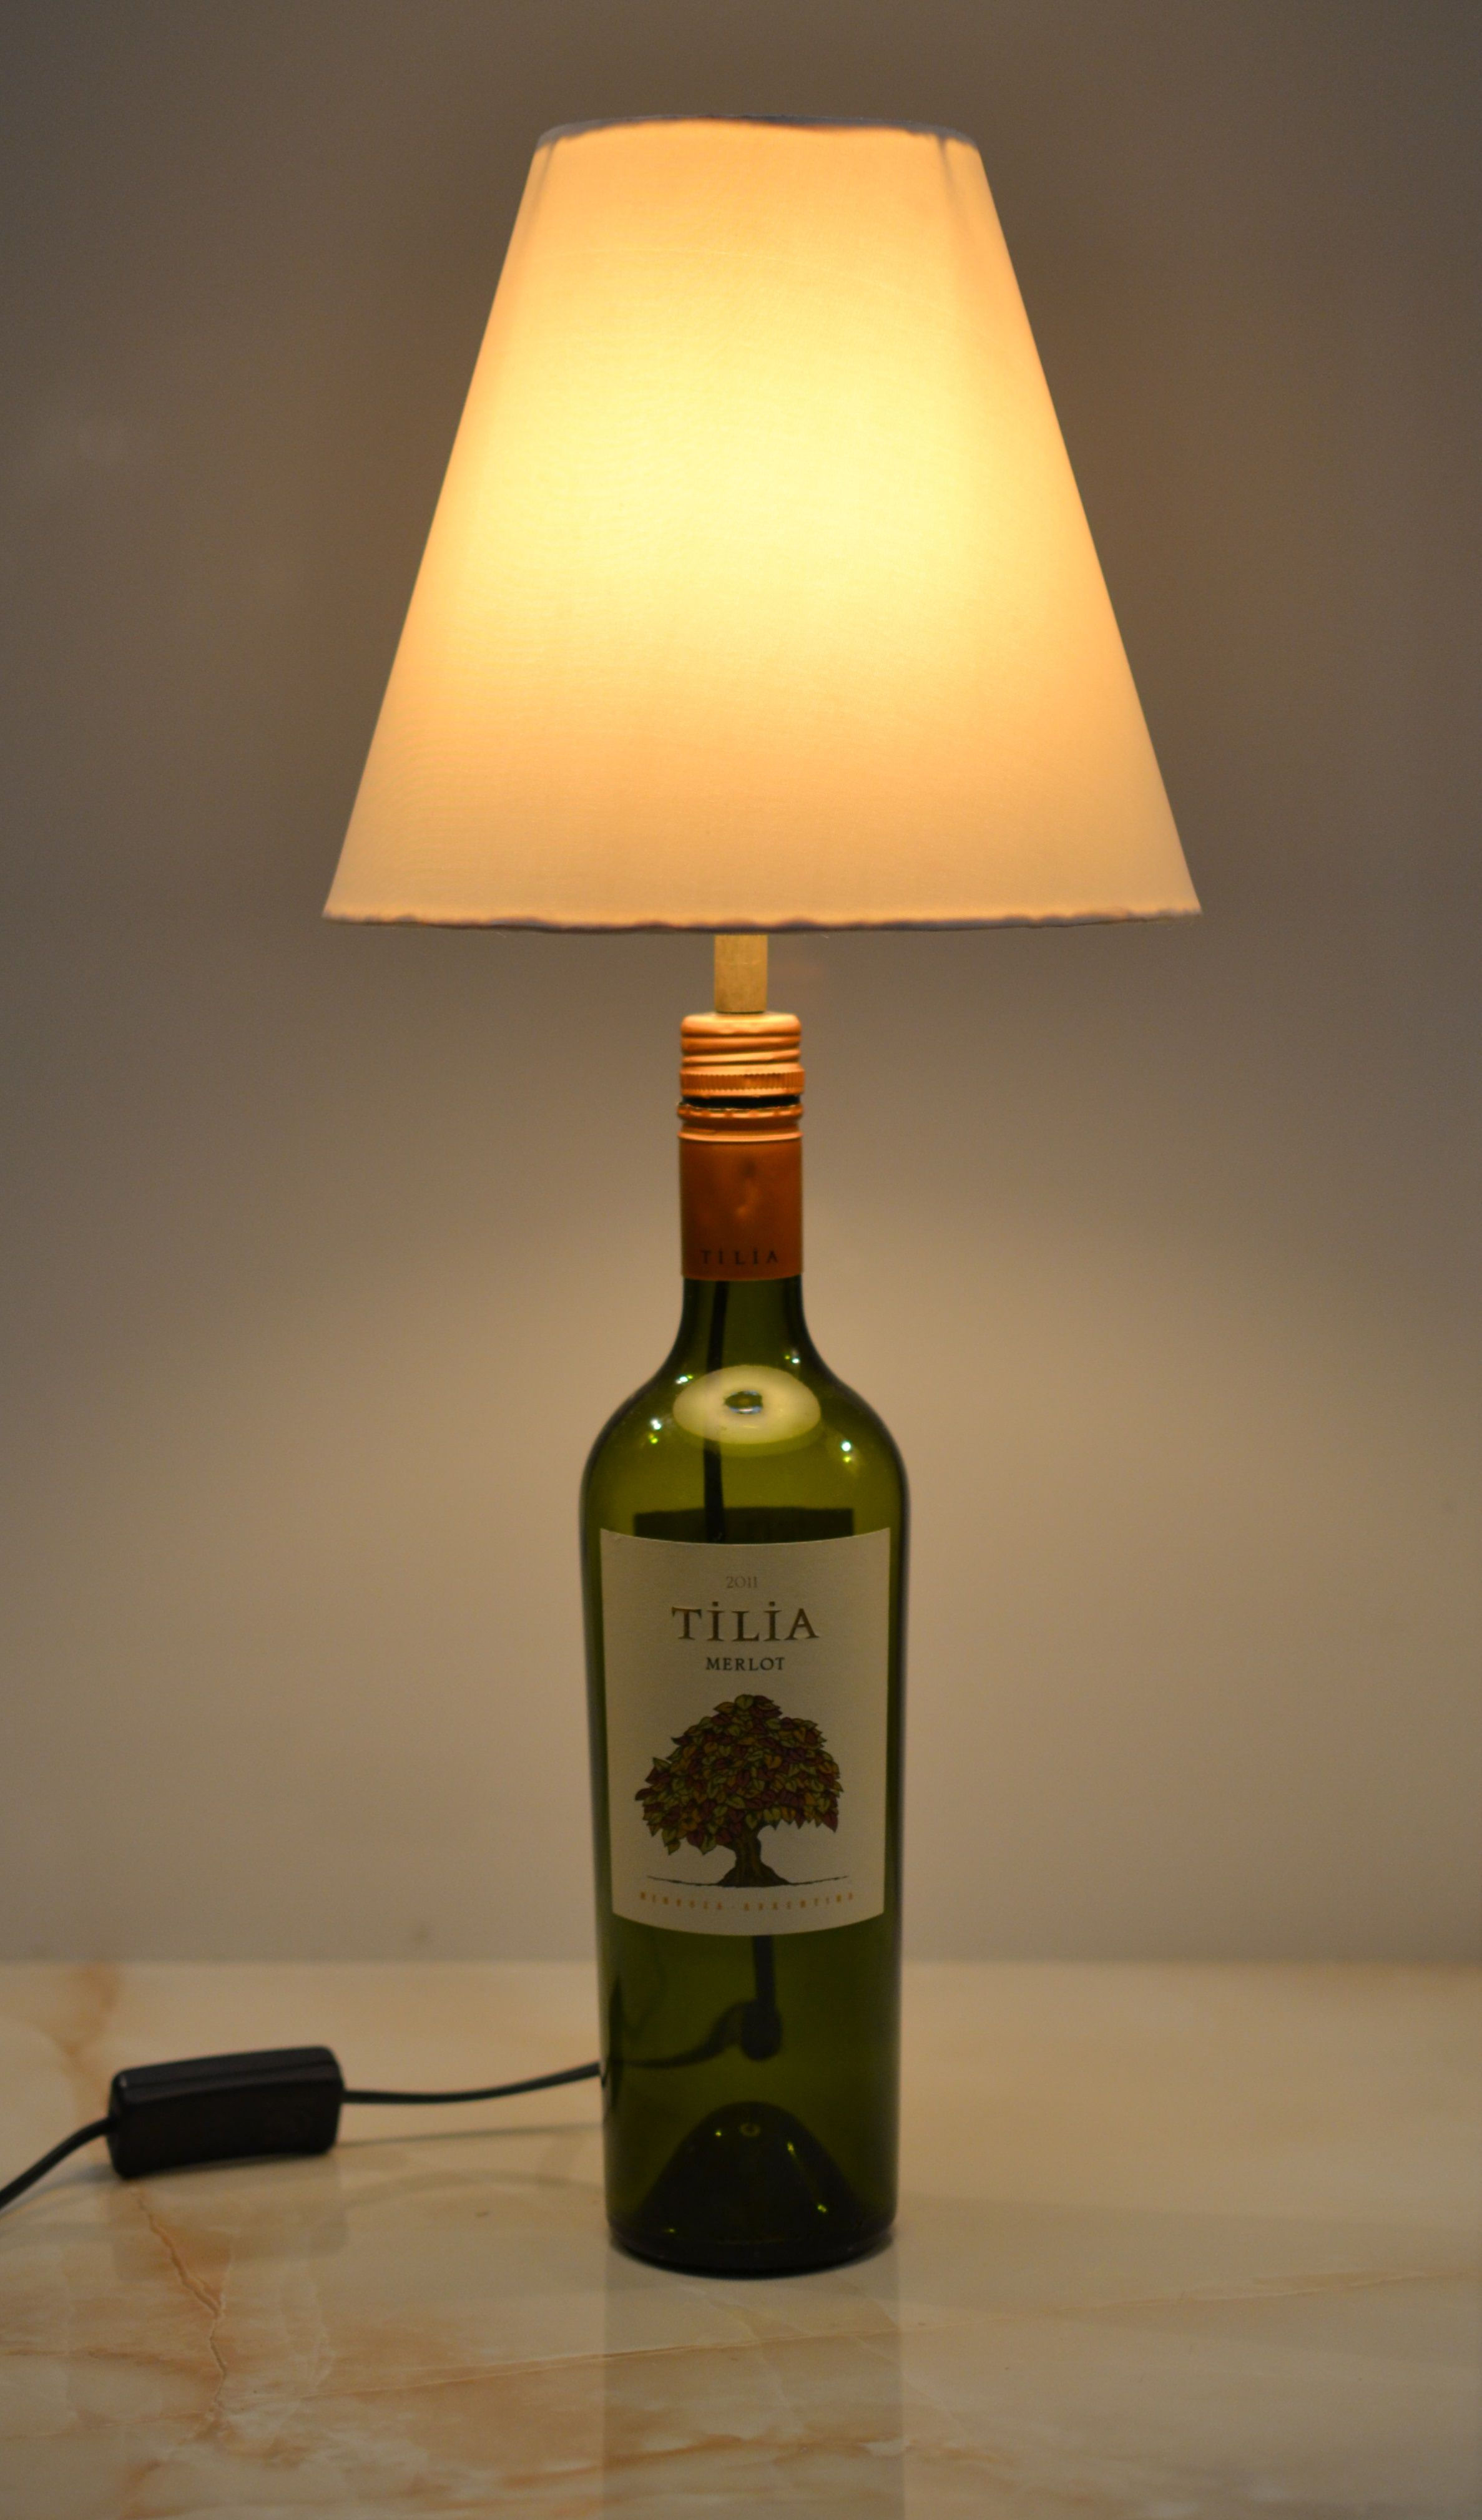 Glass Bottle Lamps Tilia Wine Bottle Lamp With A Color Coordinated Round Shade